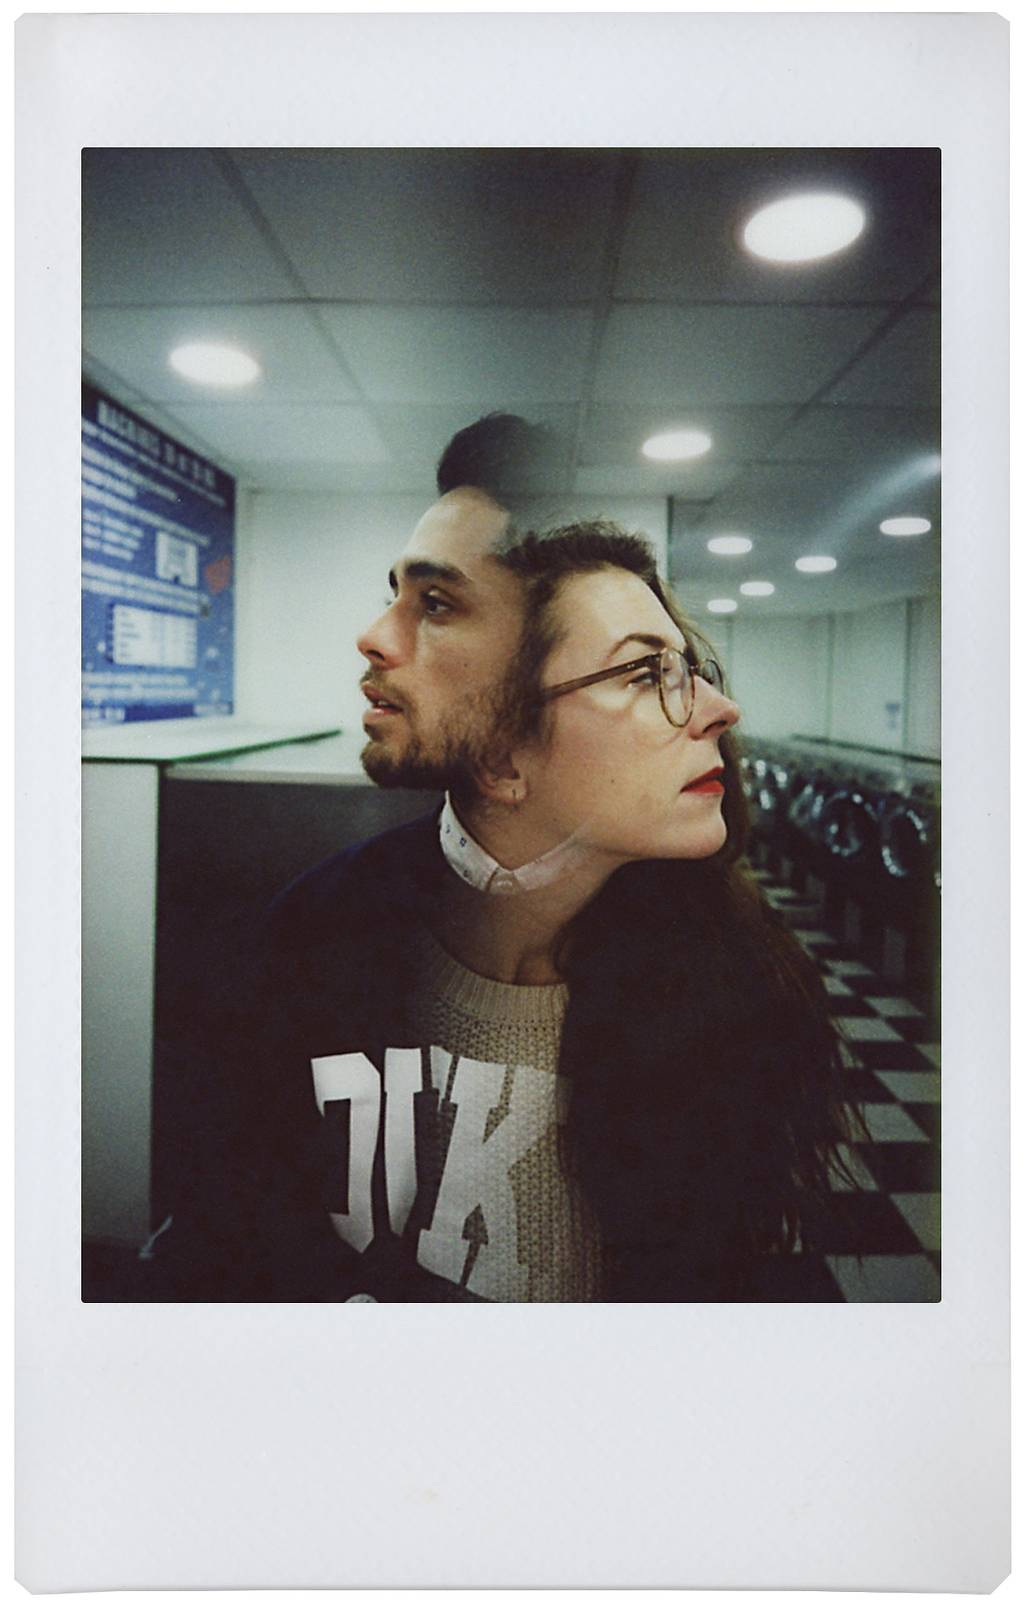 Lomo'Instant Automat Glass Tip: We are One